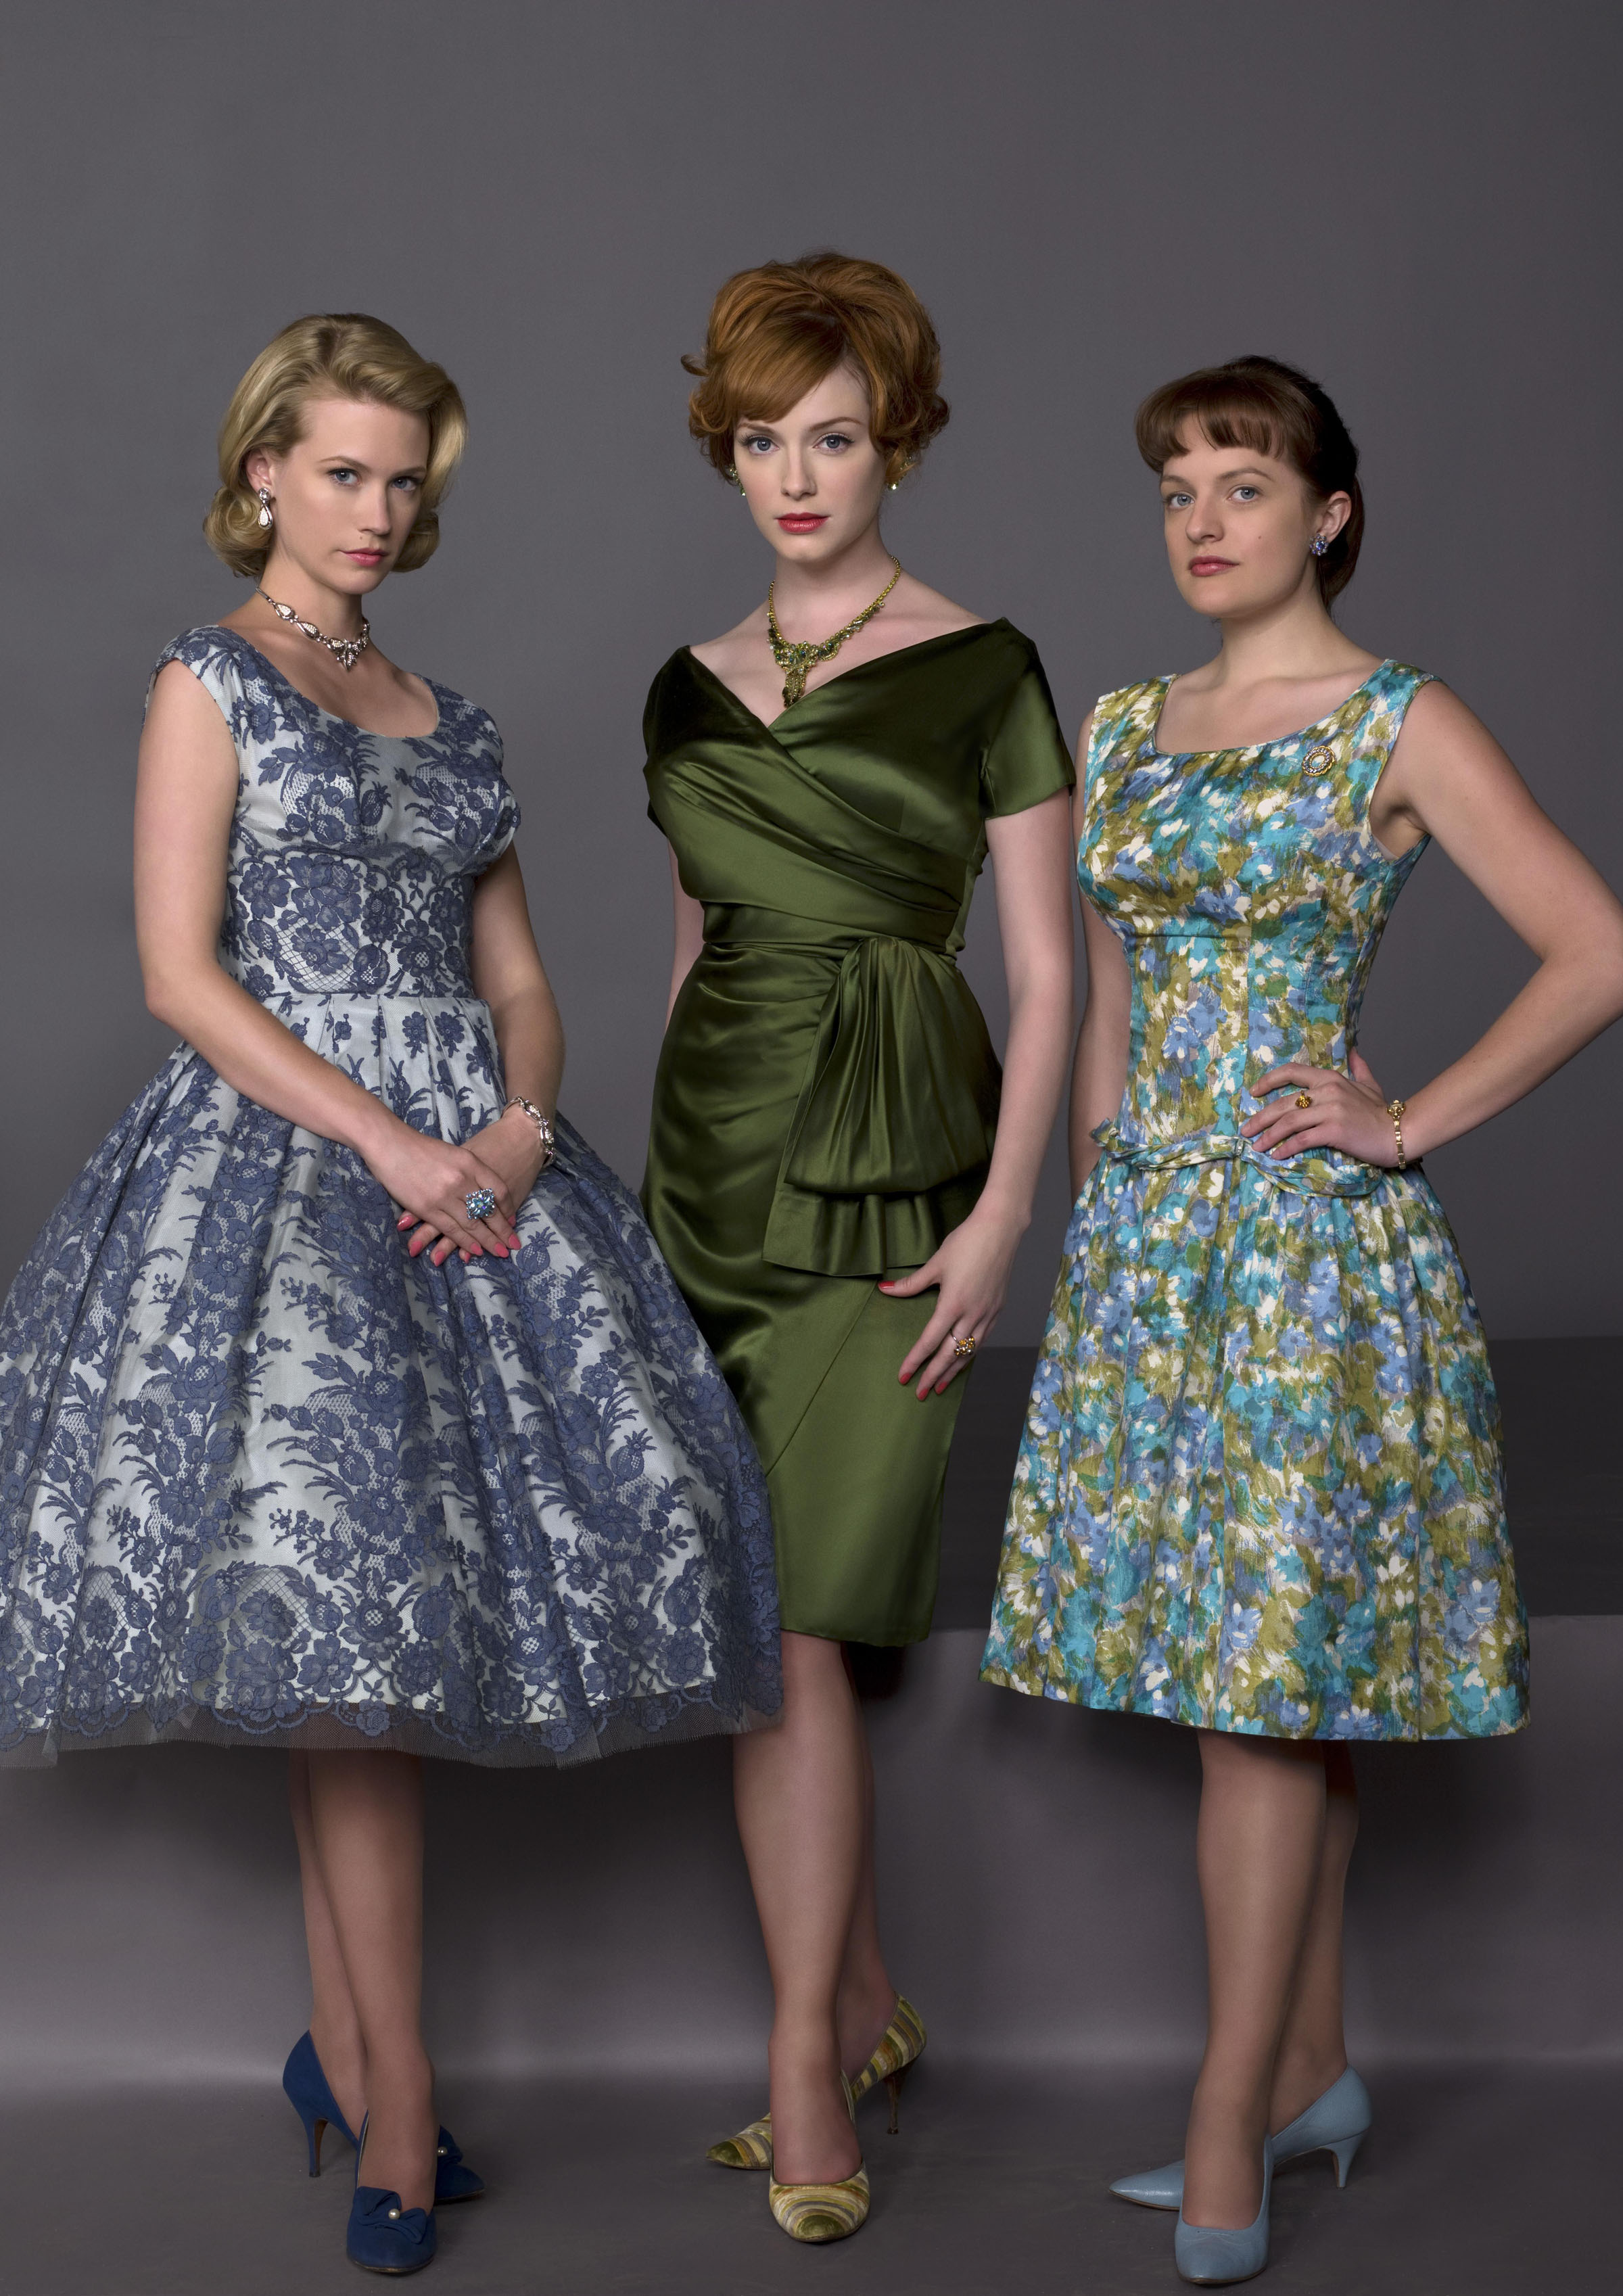 The Women of Mad Men - Dress the Part - Who do you want to be